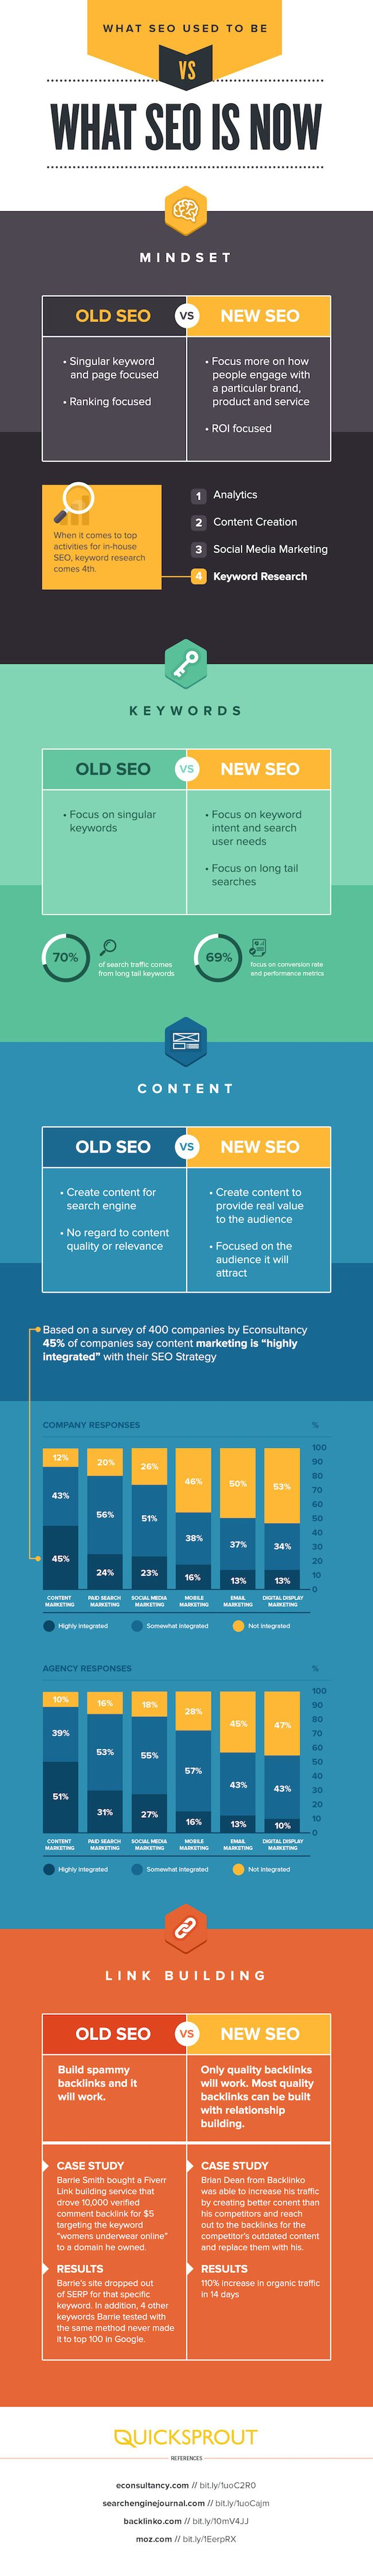 The Evolution of SEO [Infographic], via @HubSpot #InfoGraphic